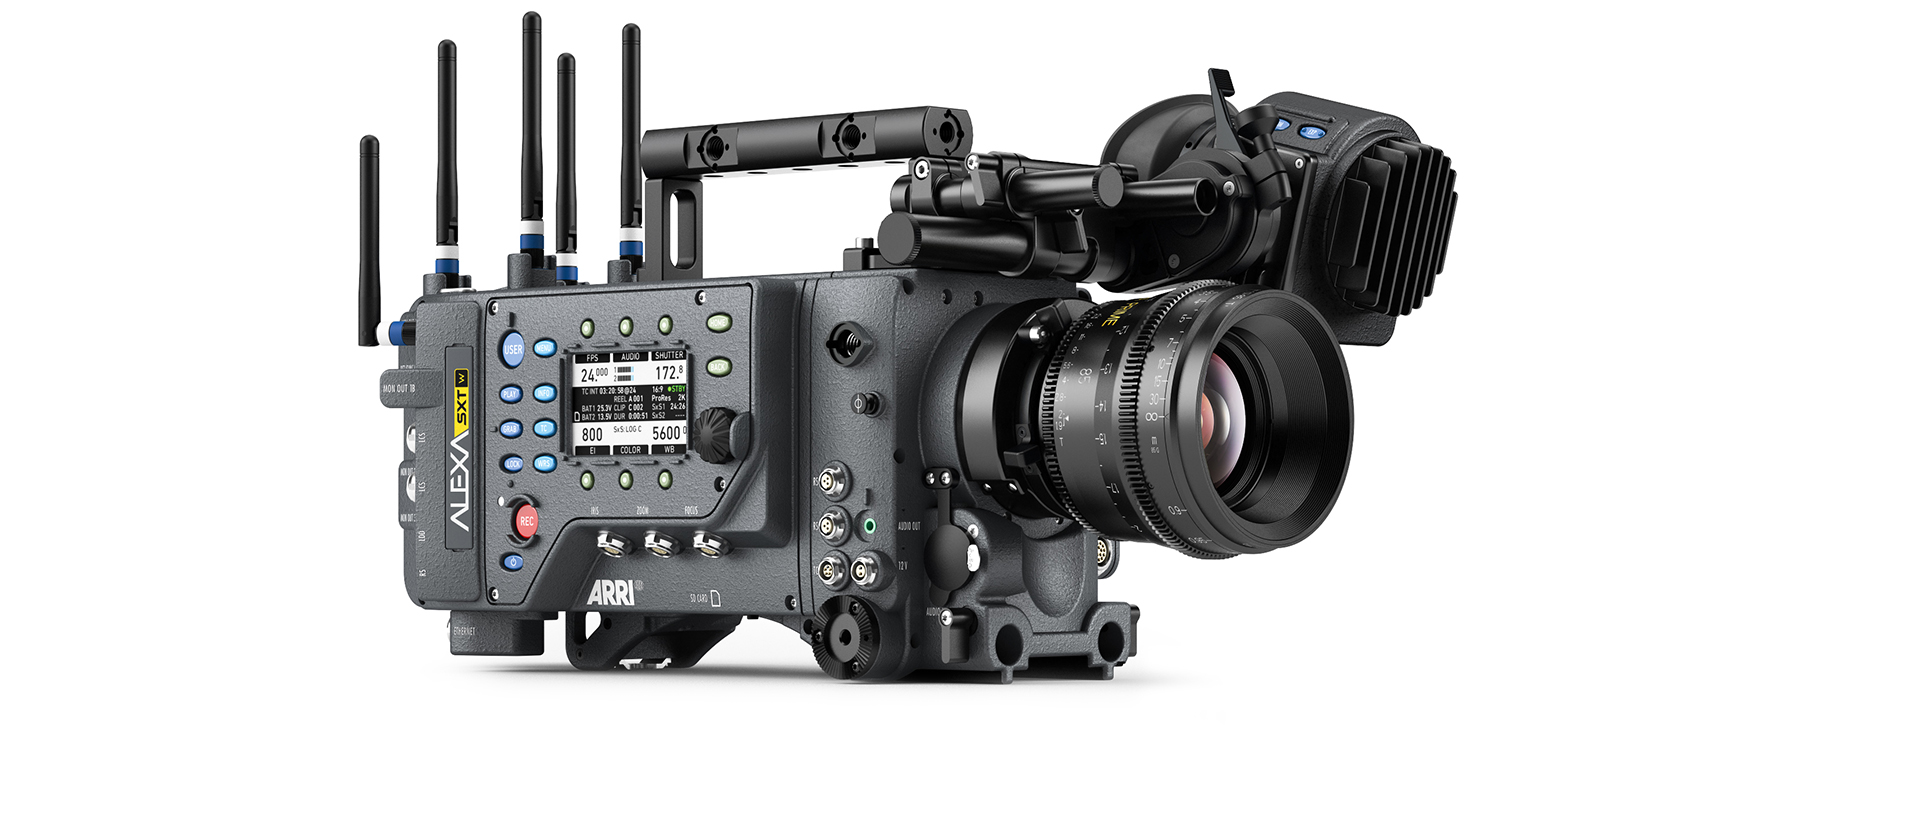 hight resolution of  the camera and fewer associated problems since cable failure is by far the most common technical hitch on set camera setup and power up are quicker